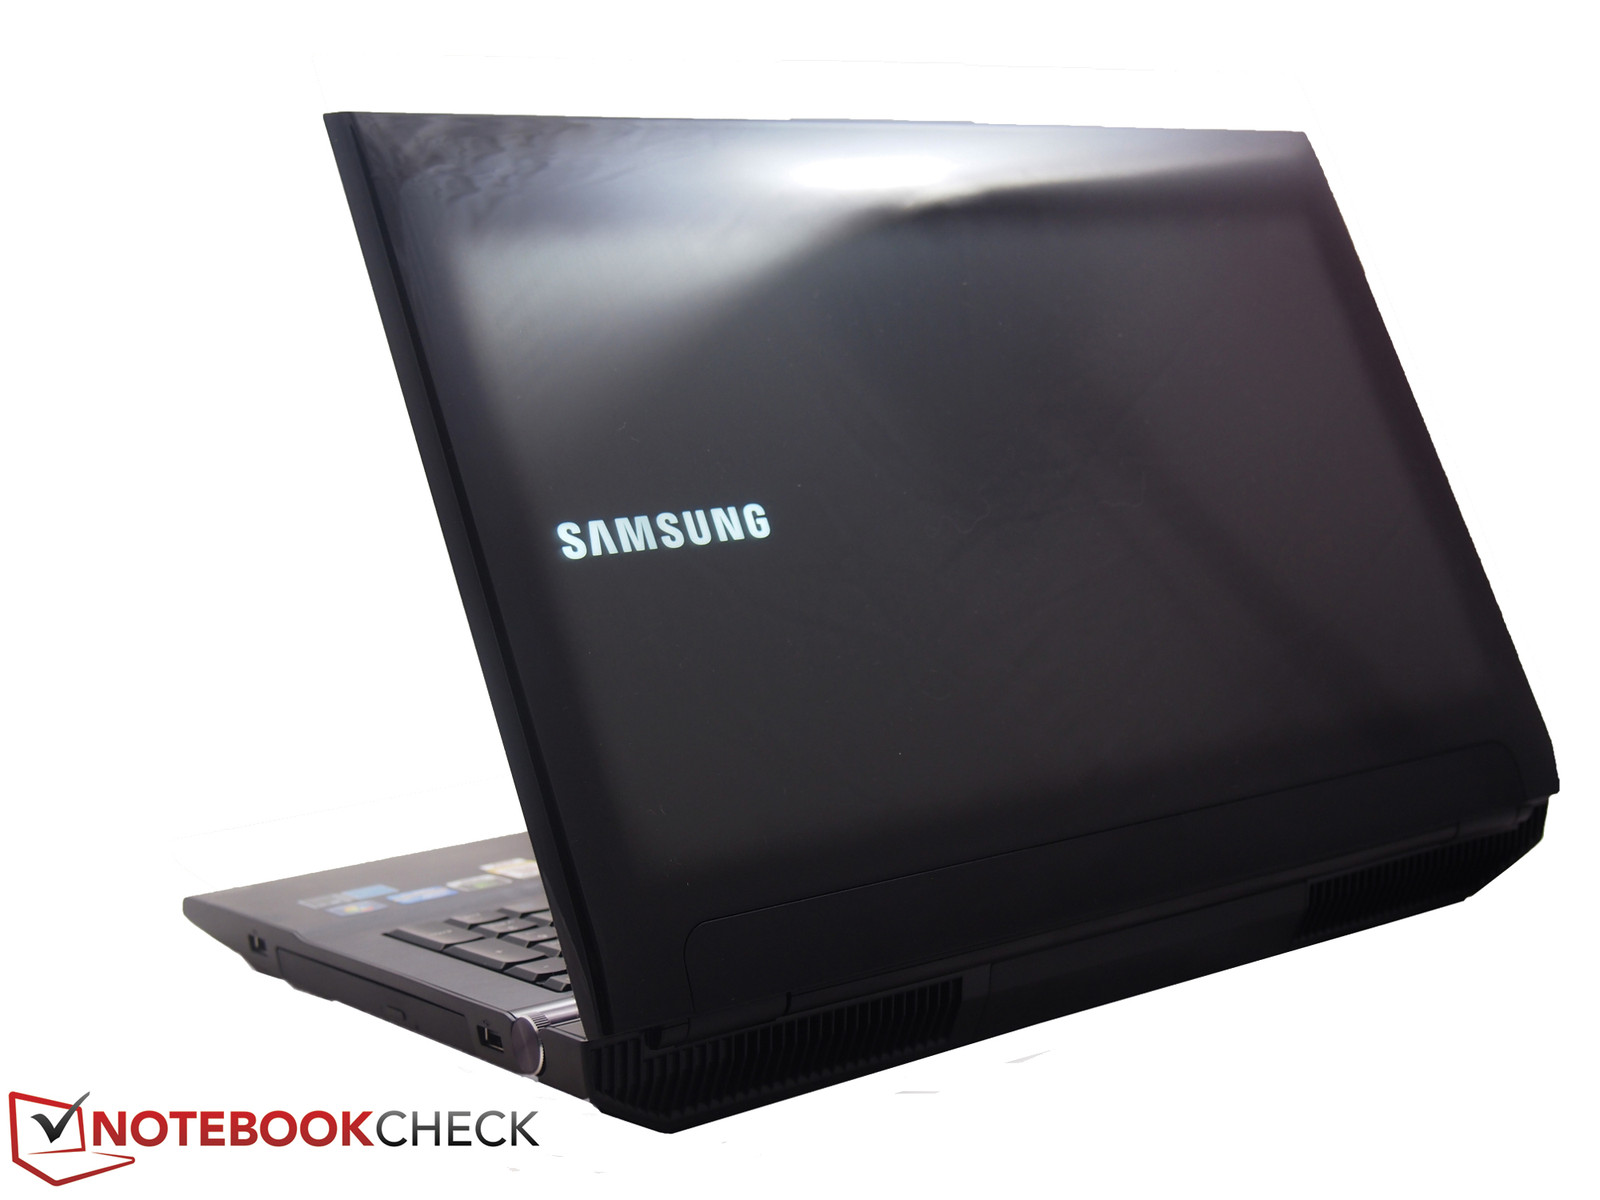 review samsung series 7 gamer 700g7c notebook notebookcheck net rh notebookcheck net Samsung Slate Tablet User Guide Samsung Series 7 Tablet Manual